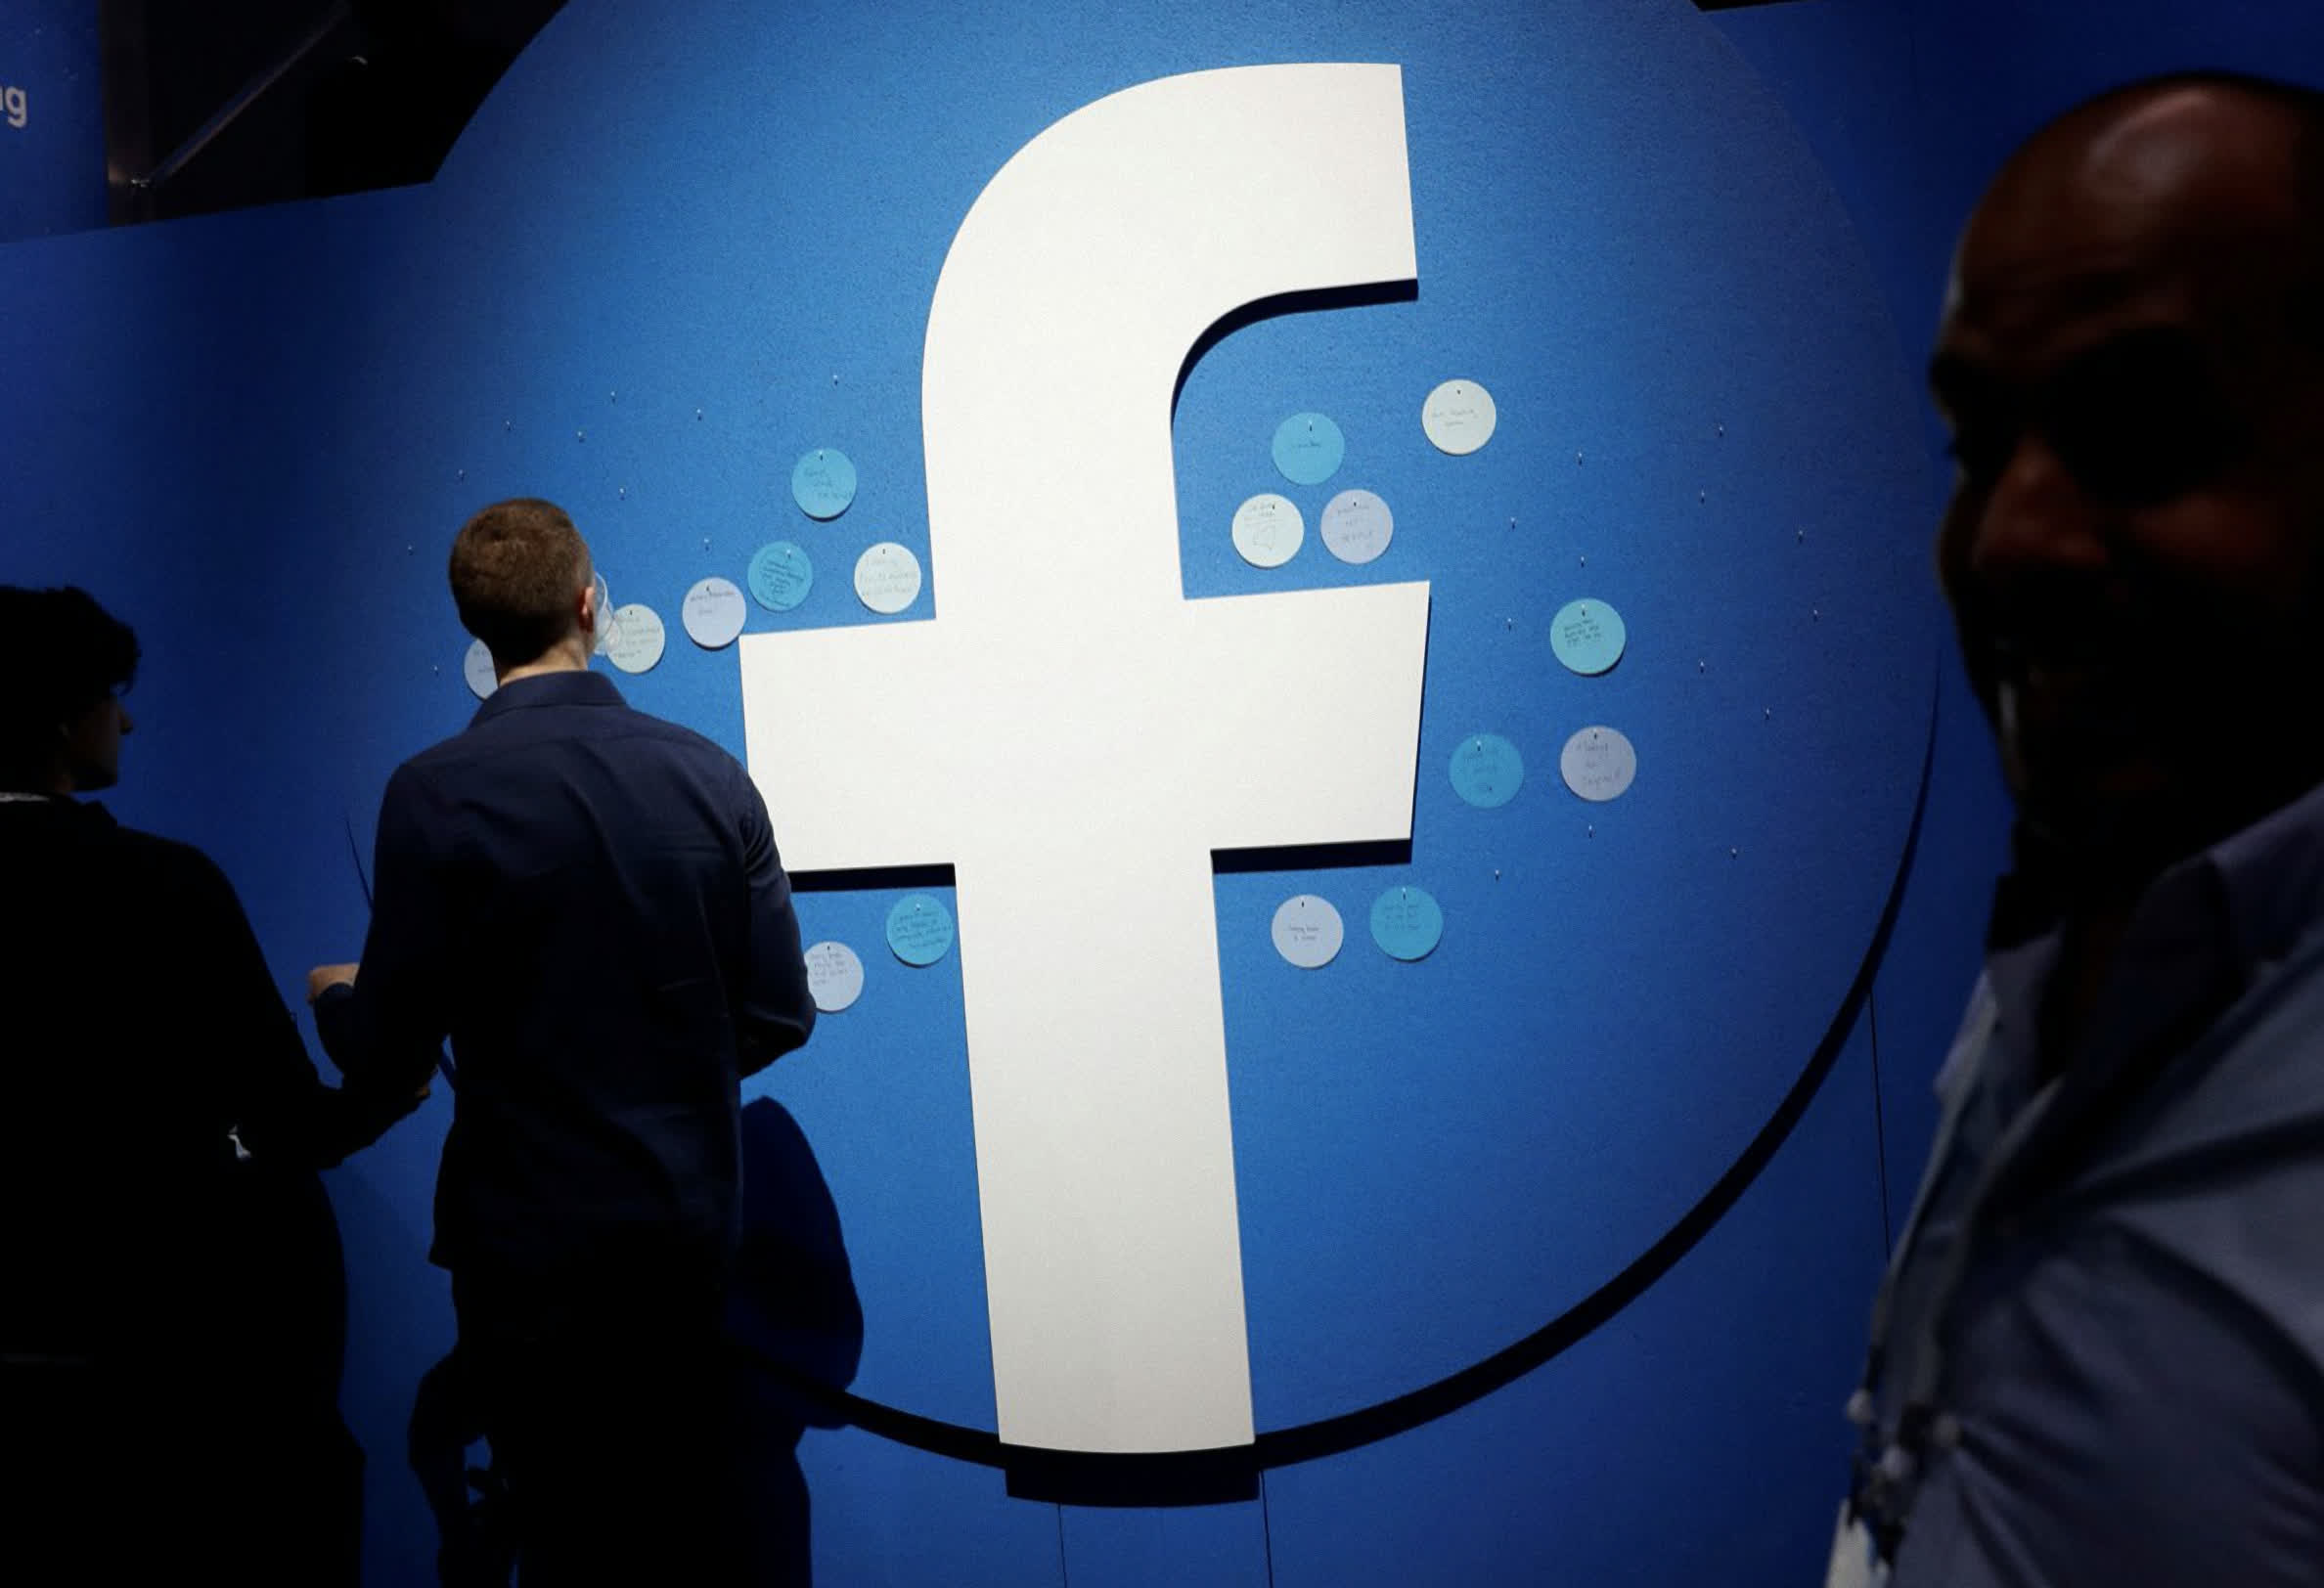 Facebook says it has invested $13 billion on safety and security over the past five years